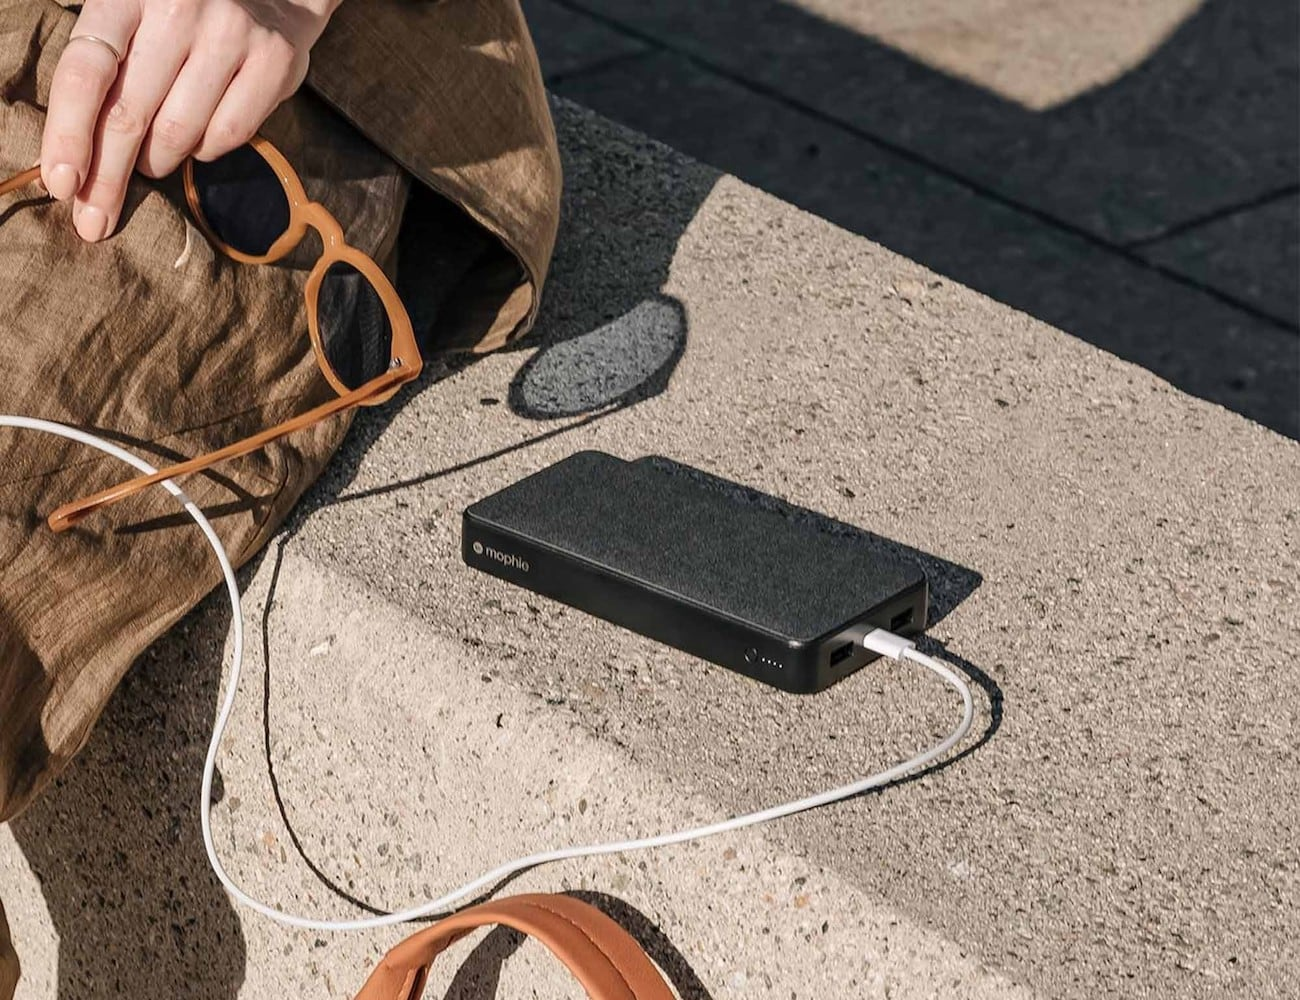 mophie Fabric Powerstation 10,000mAh Power Bank gives you 36 hours of extra battery life